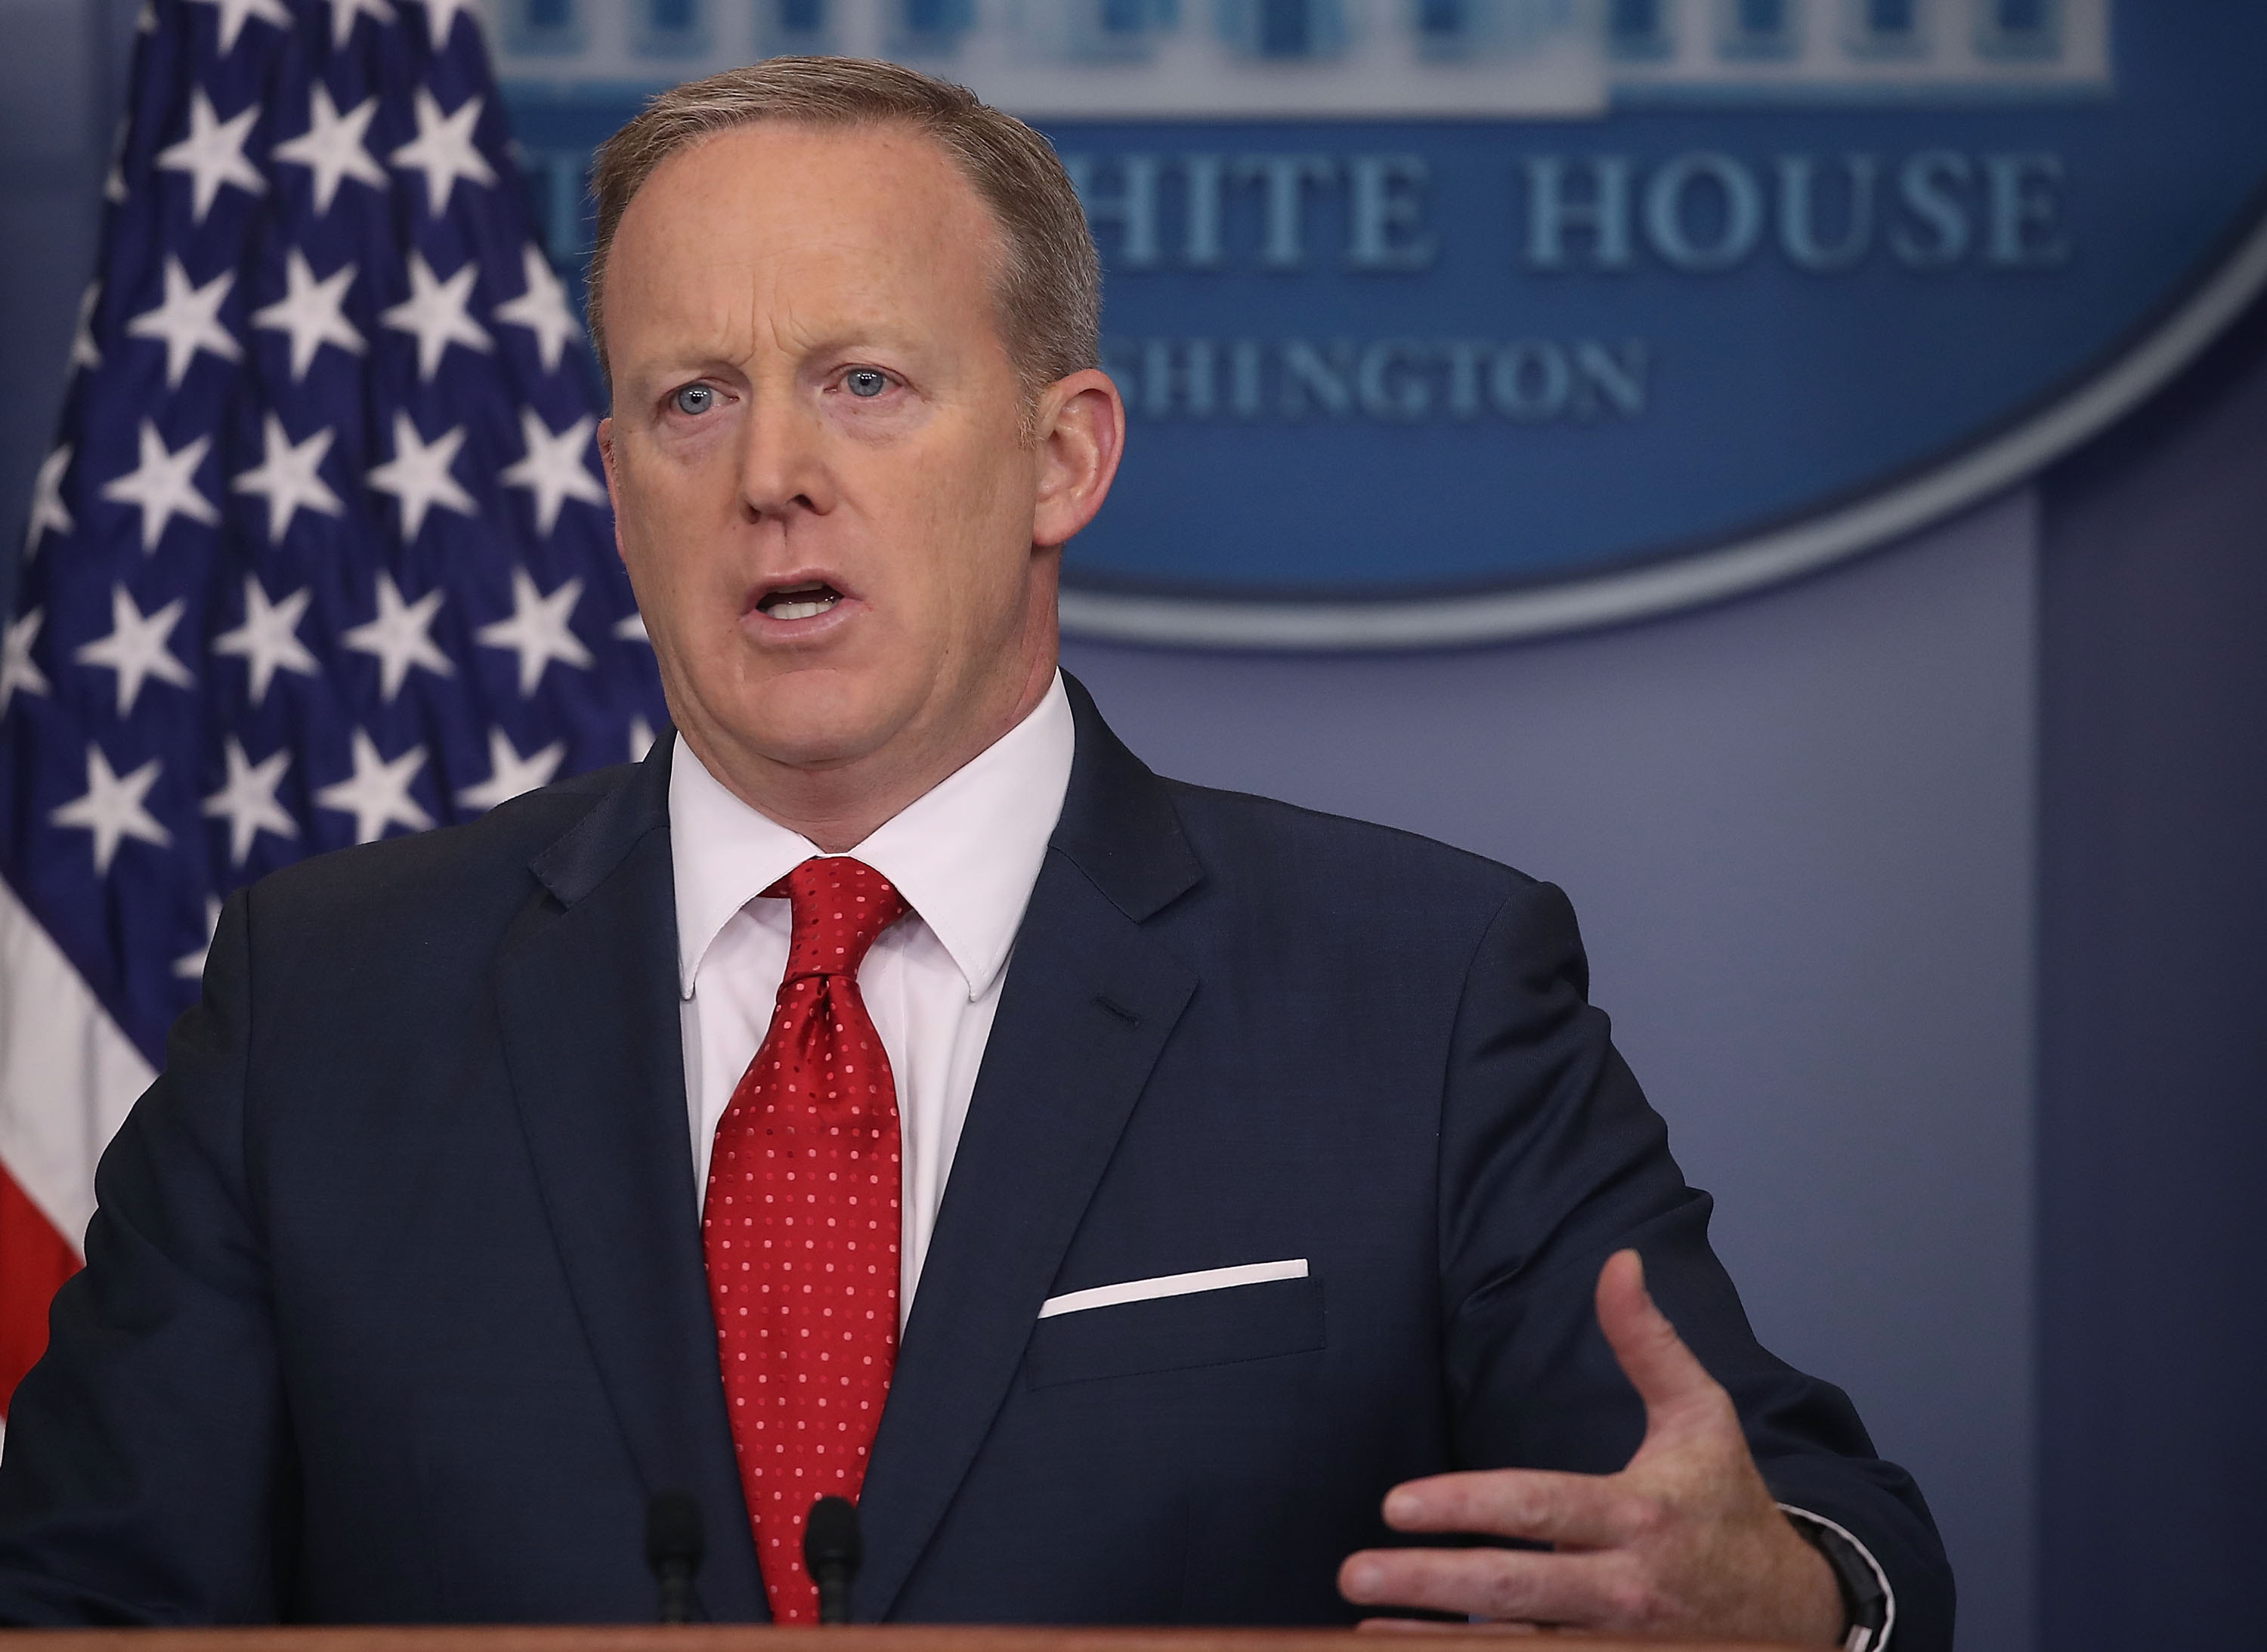 Sean Spicer has resigned as White House press secretary. (Getty Images)